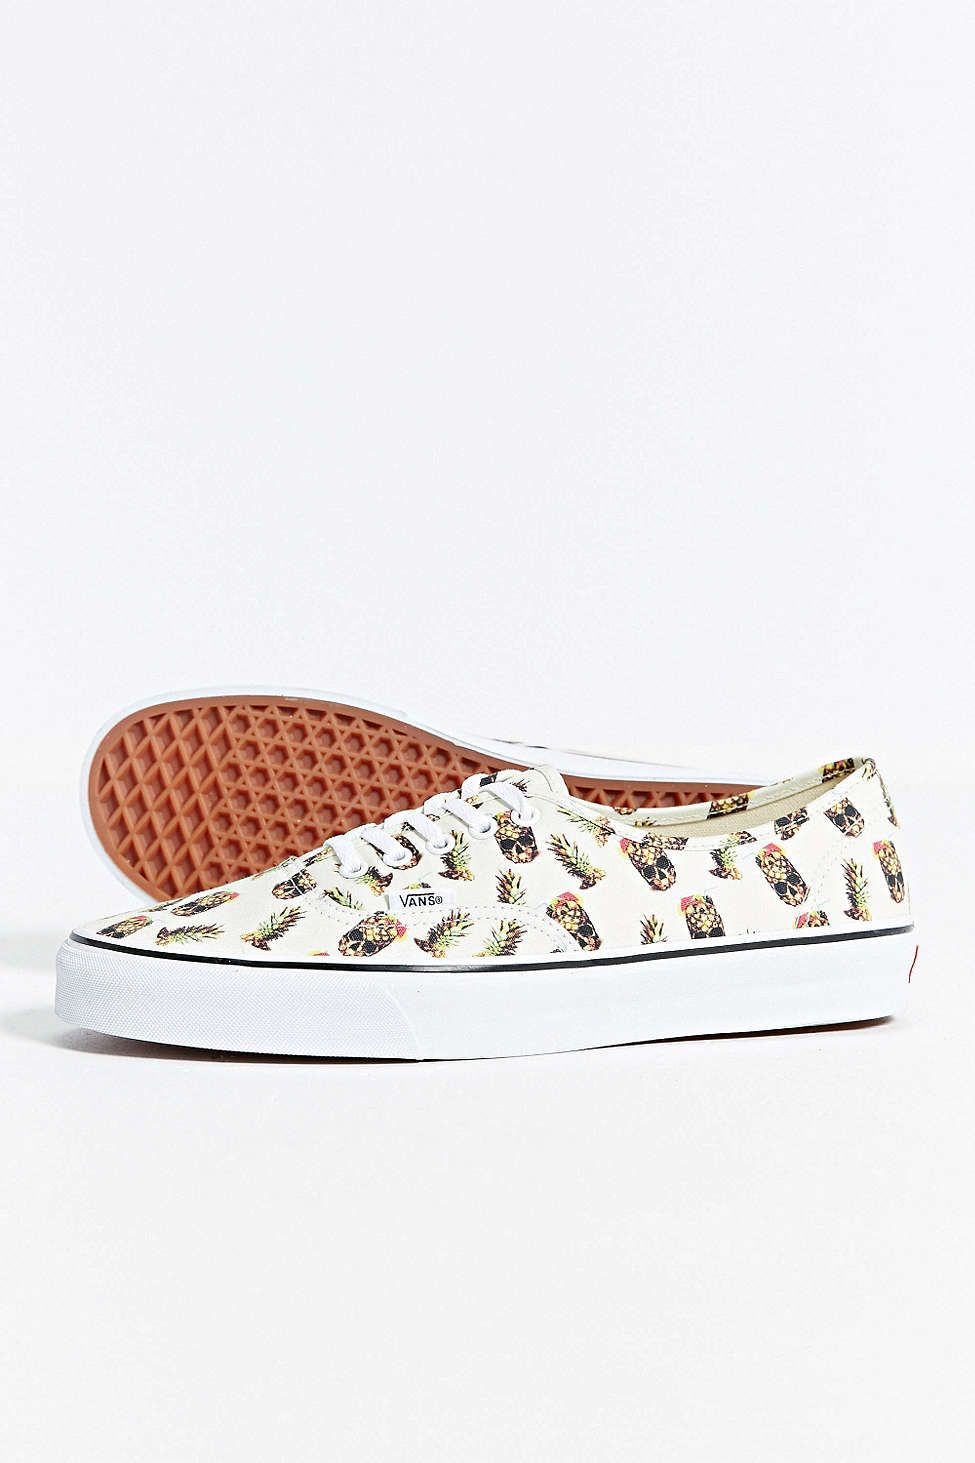 90a3c9fb31 Vans Authentic Pineapple Mens Sneaker - Urban Outfitters